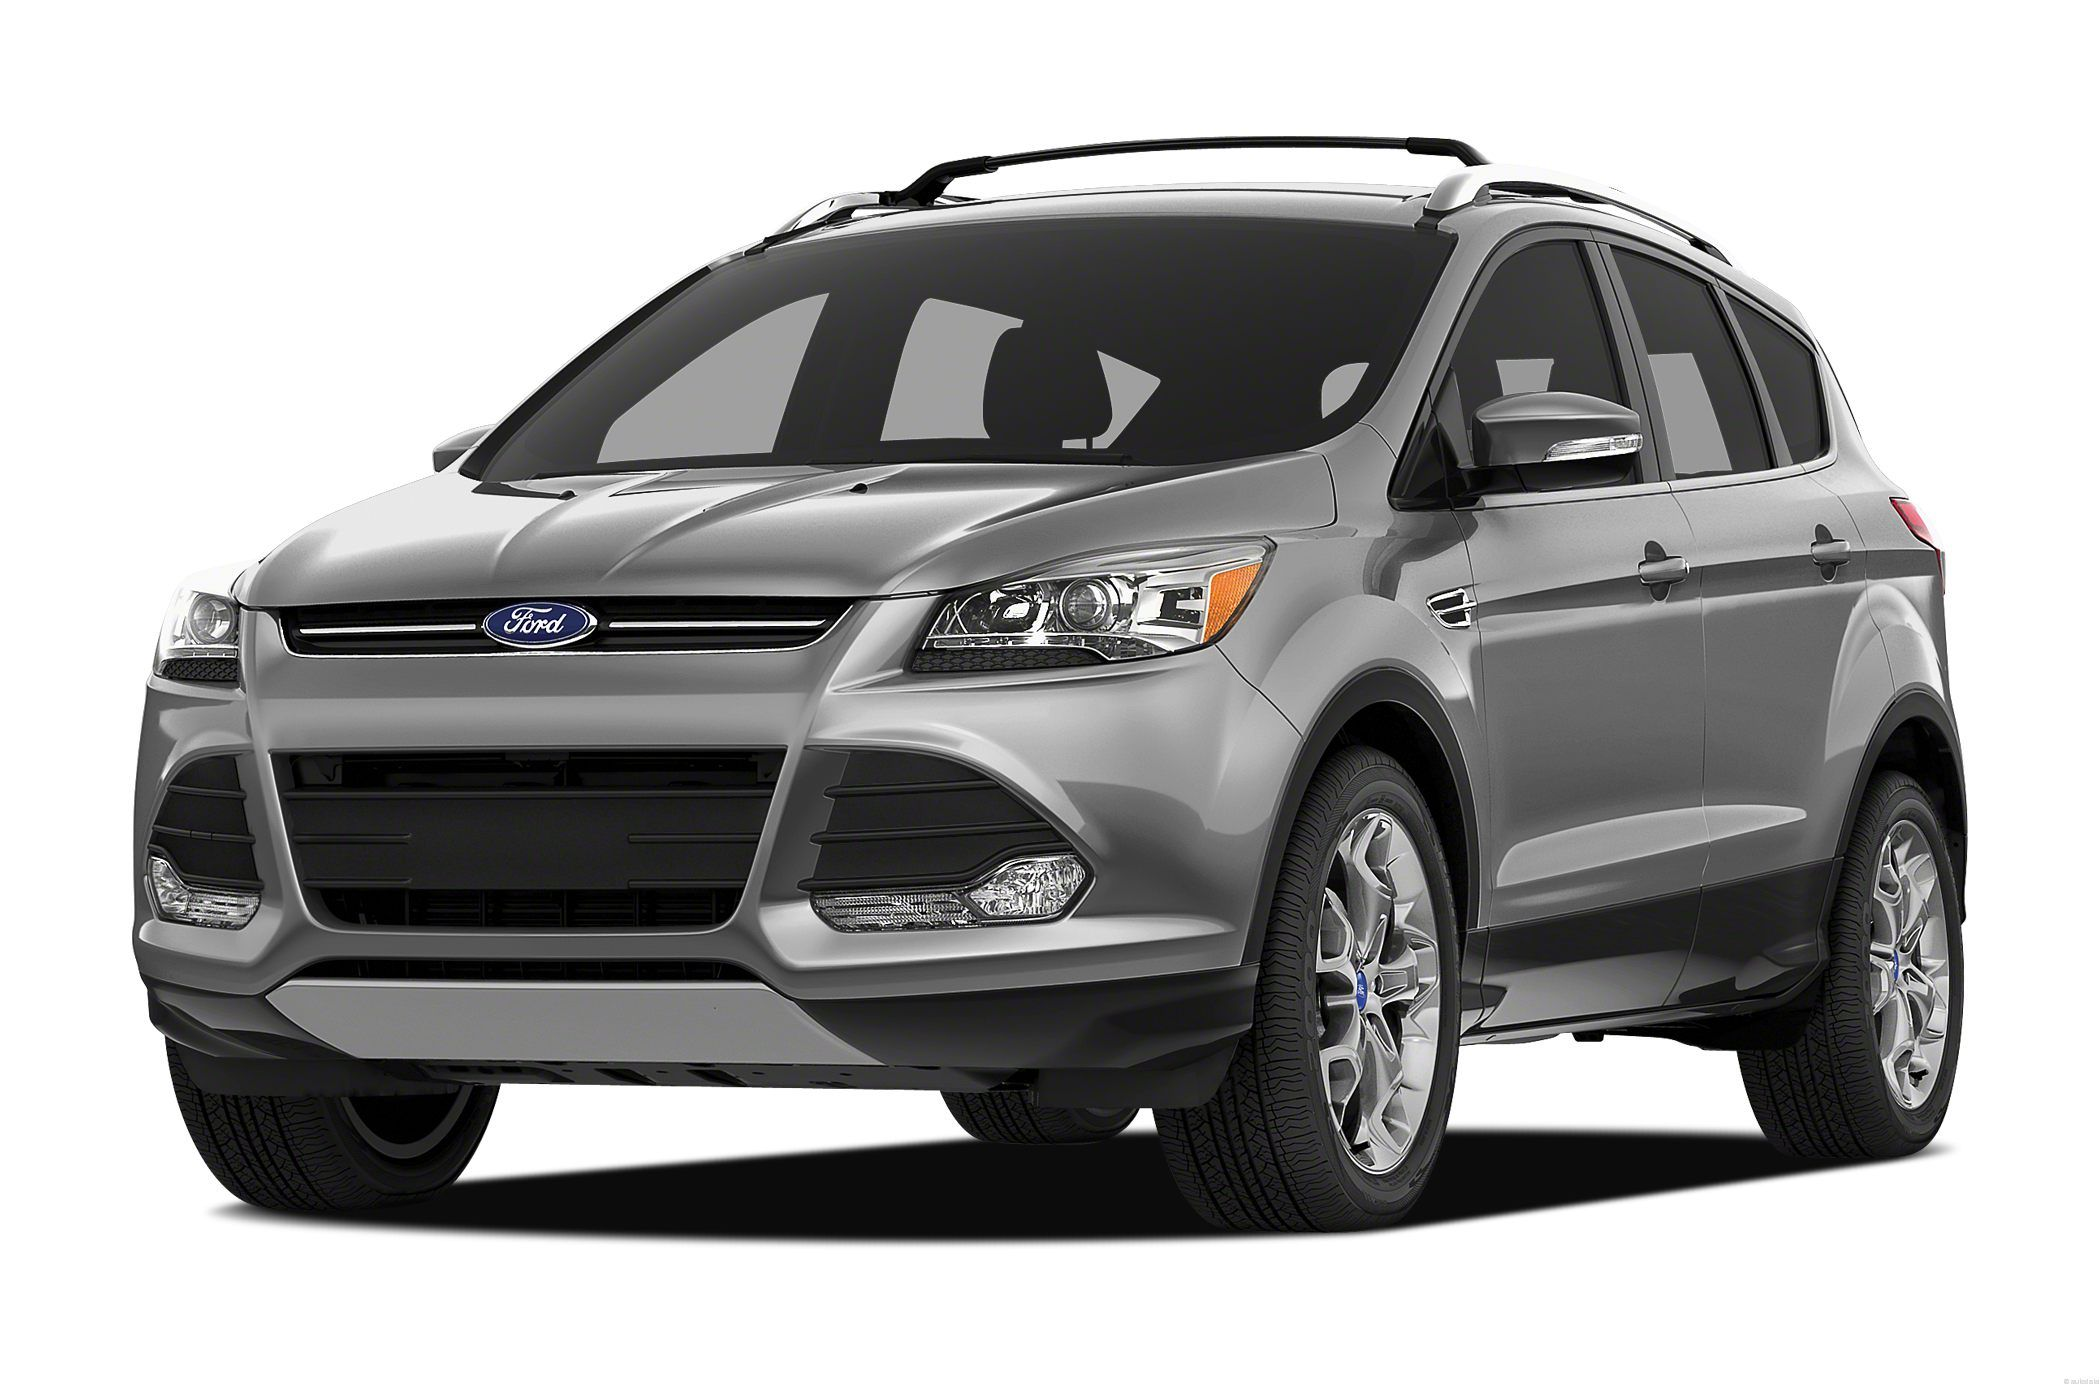 Cool Stunning Ford Escape Ambient Lighting  sc 1 st  Pinterest & Cool Stunning Ford Escape Ambient Lighting | Featured Car ... azcodes.com